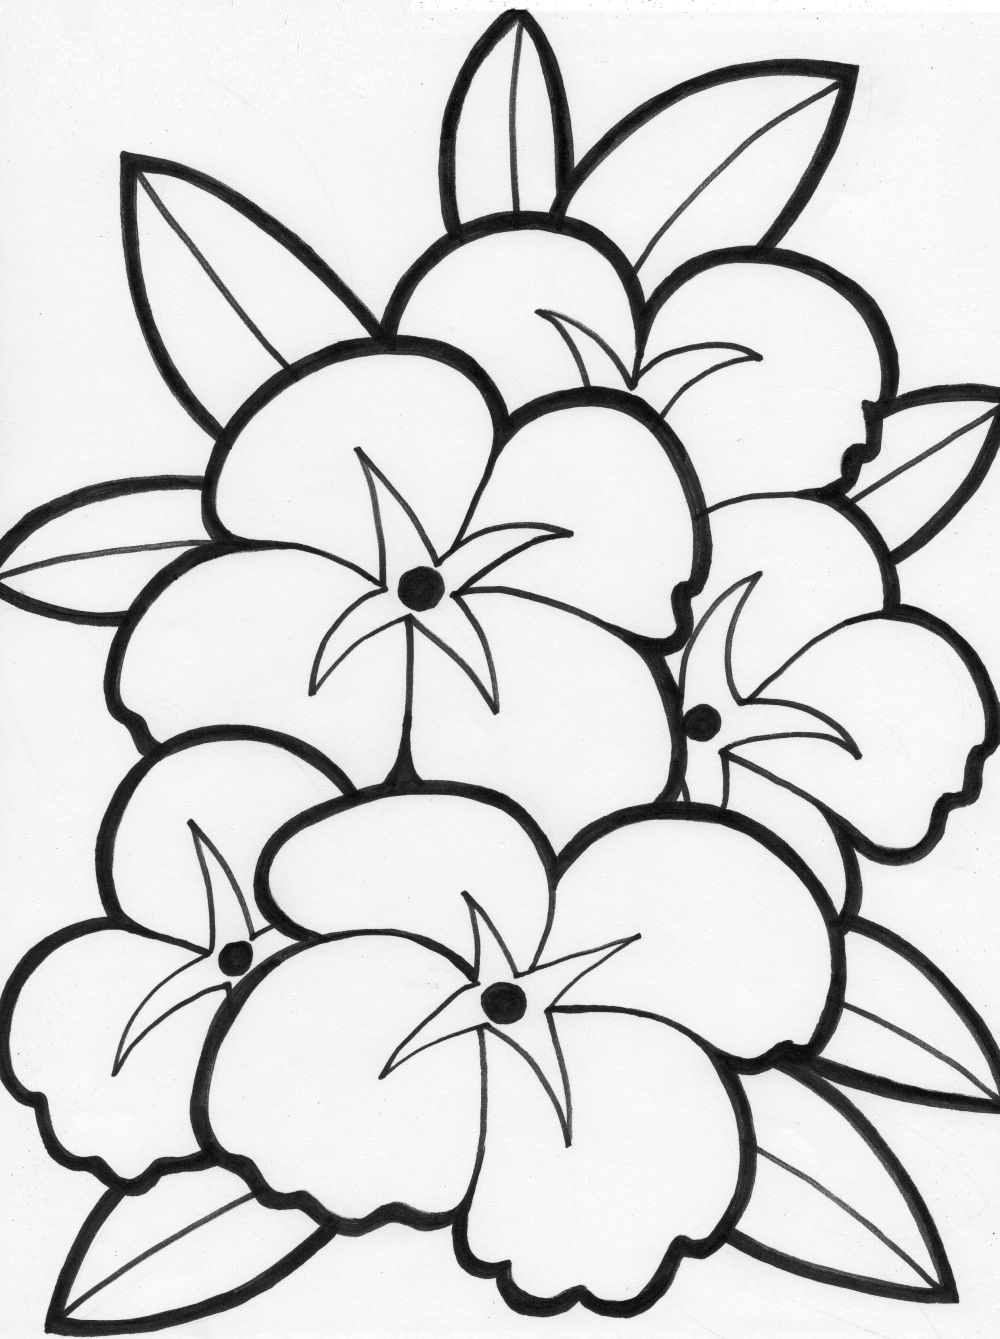 Free Flower Coloring Pages Education  - free flower printable coloring pages